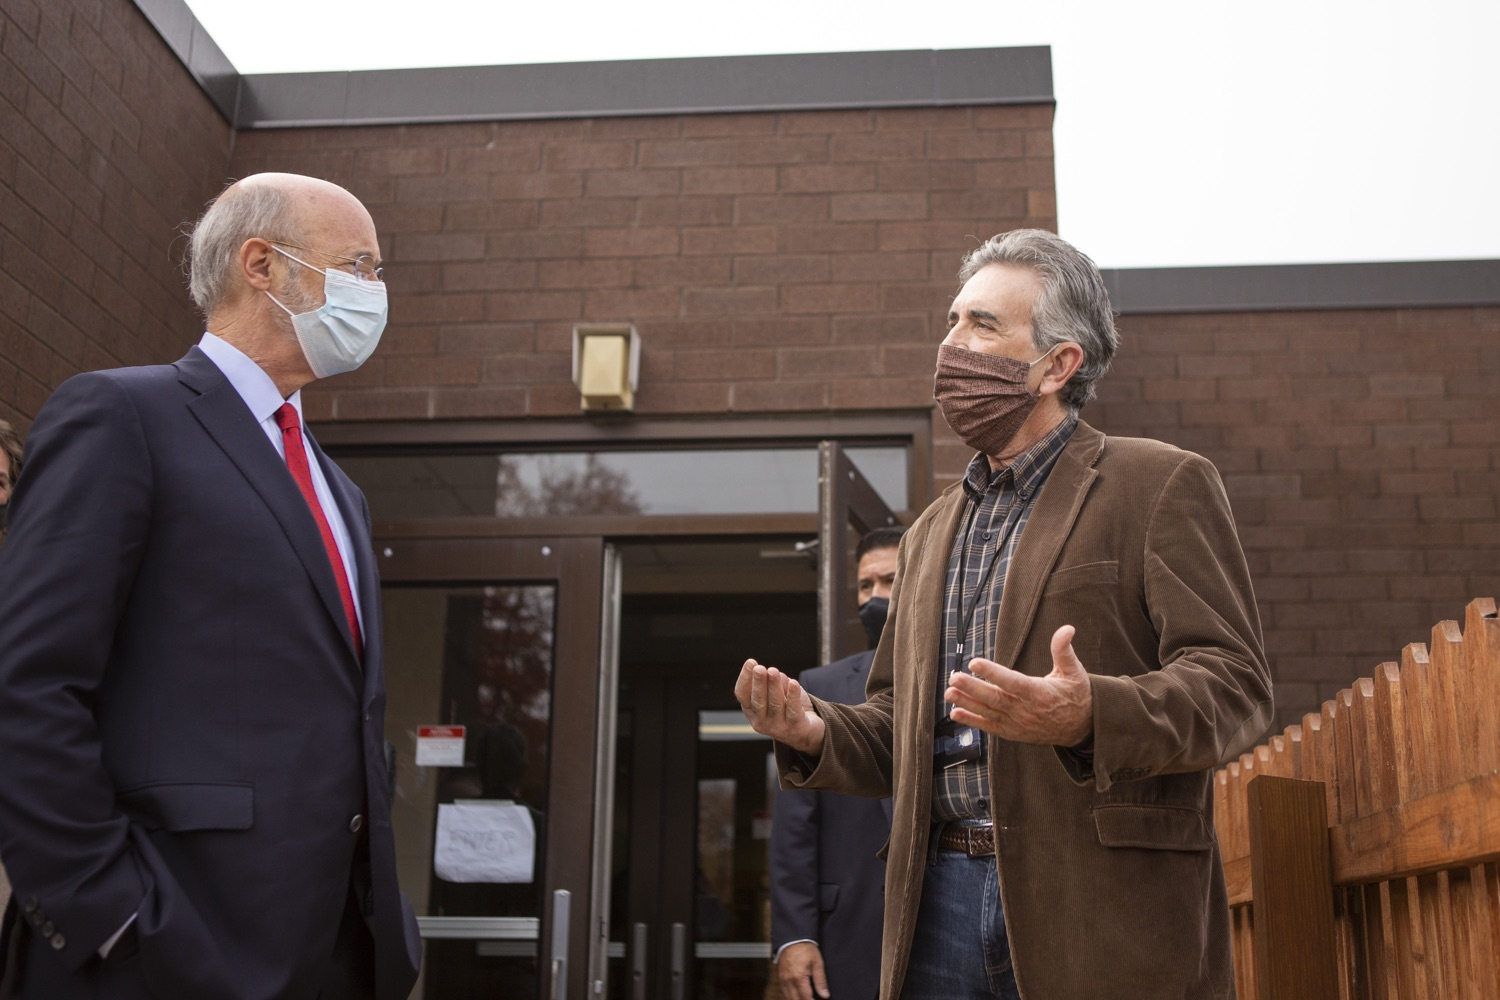 "<a href=""https://filesource.wostreaming.net/commonwealthofpa/photo/18310_gov_adult_use_cannabis_dz_019.jpg"" target=""_blank"">⇣ Download Photo<br></a>Governor Tom Wolf touring The Mountain Center.Governor Tom Wolf visited The Mountain Center in Tobyhanna, Monroe County today to talk about the economic growth potential and restorative justice benefits of legalizing adult-use cannabis, something the state General Assembly has not yet done despite multiple requests from the governor and Lieutenant Governor John Fetterman to take up legislation this fall.  Tobyhanna, PA  October 13, 2020"